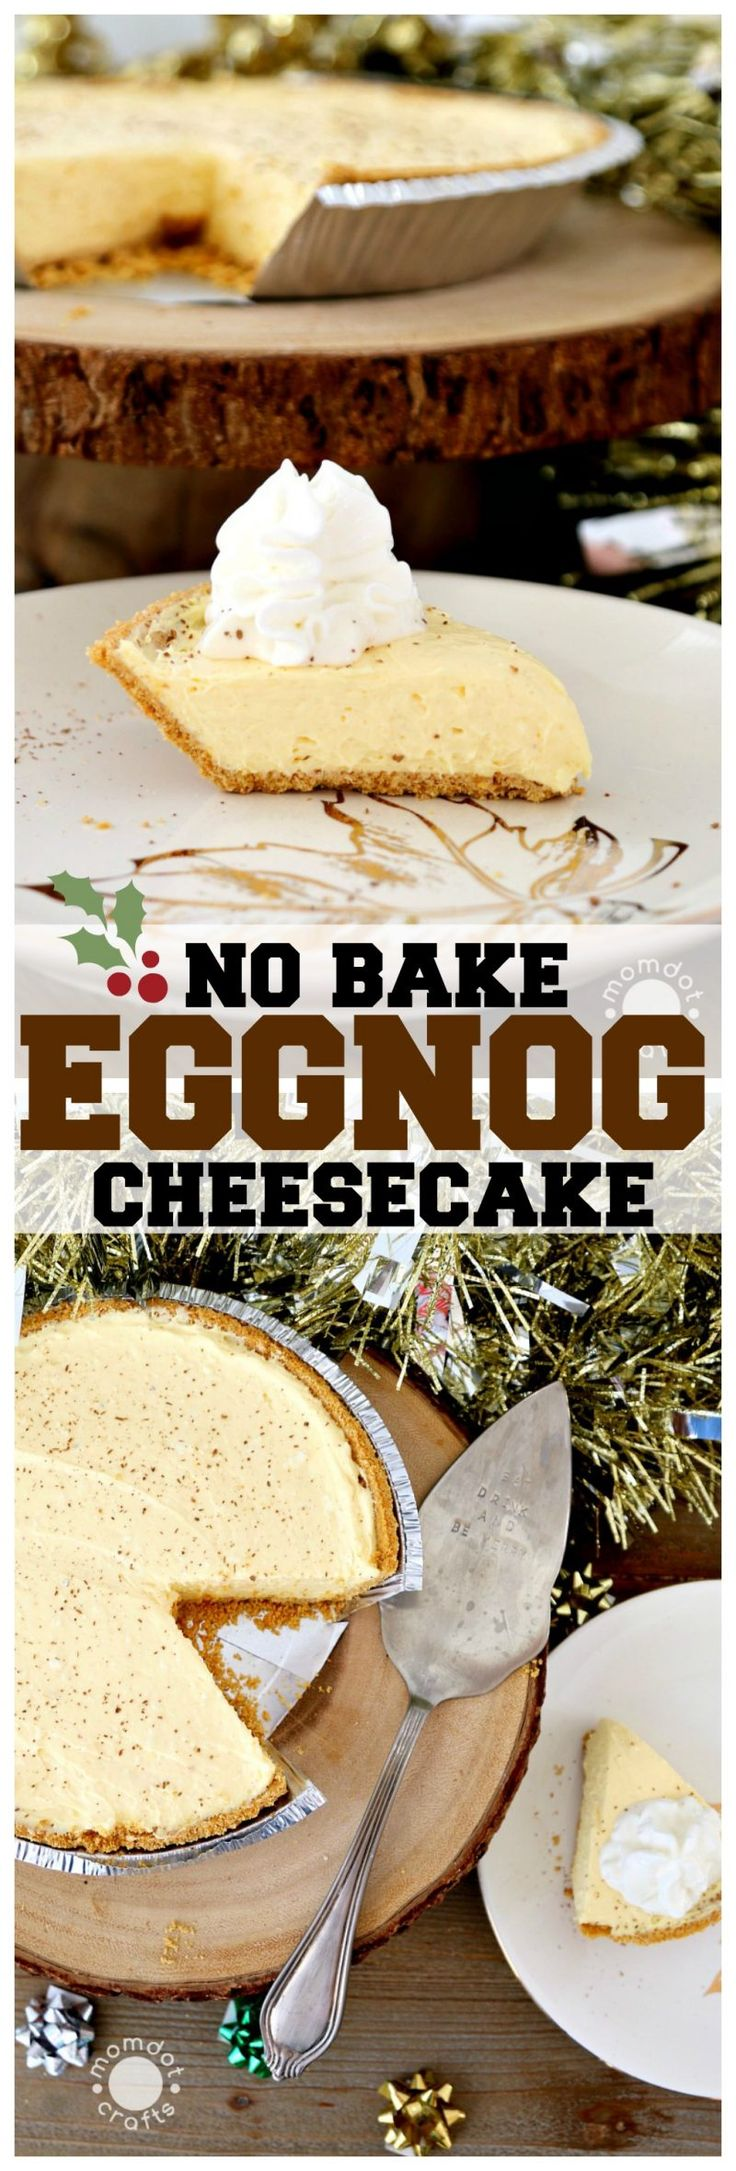 No Bake Egg Nog Cheesecake Recipe is a delicious and creamy no oven delight perfect for your holiday dessert tables, Easy & with Egg Nog Flavor!